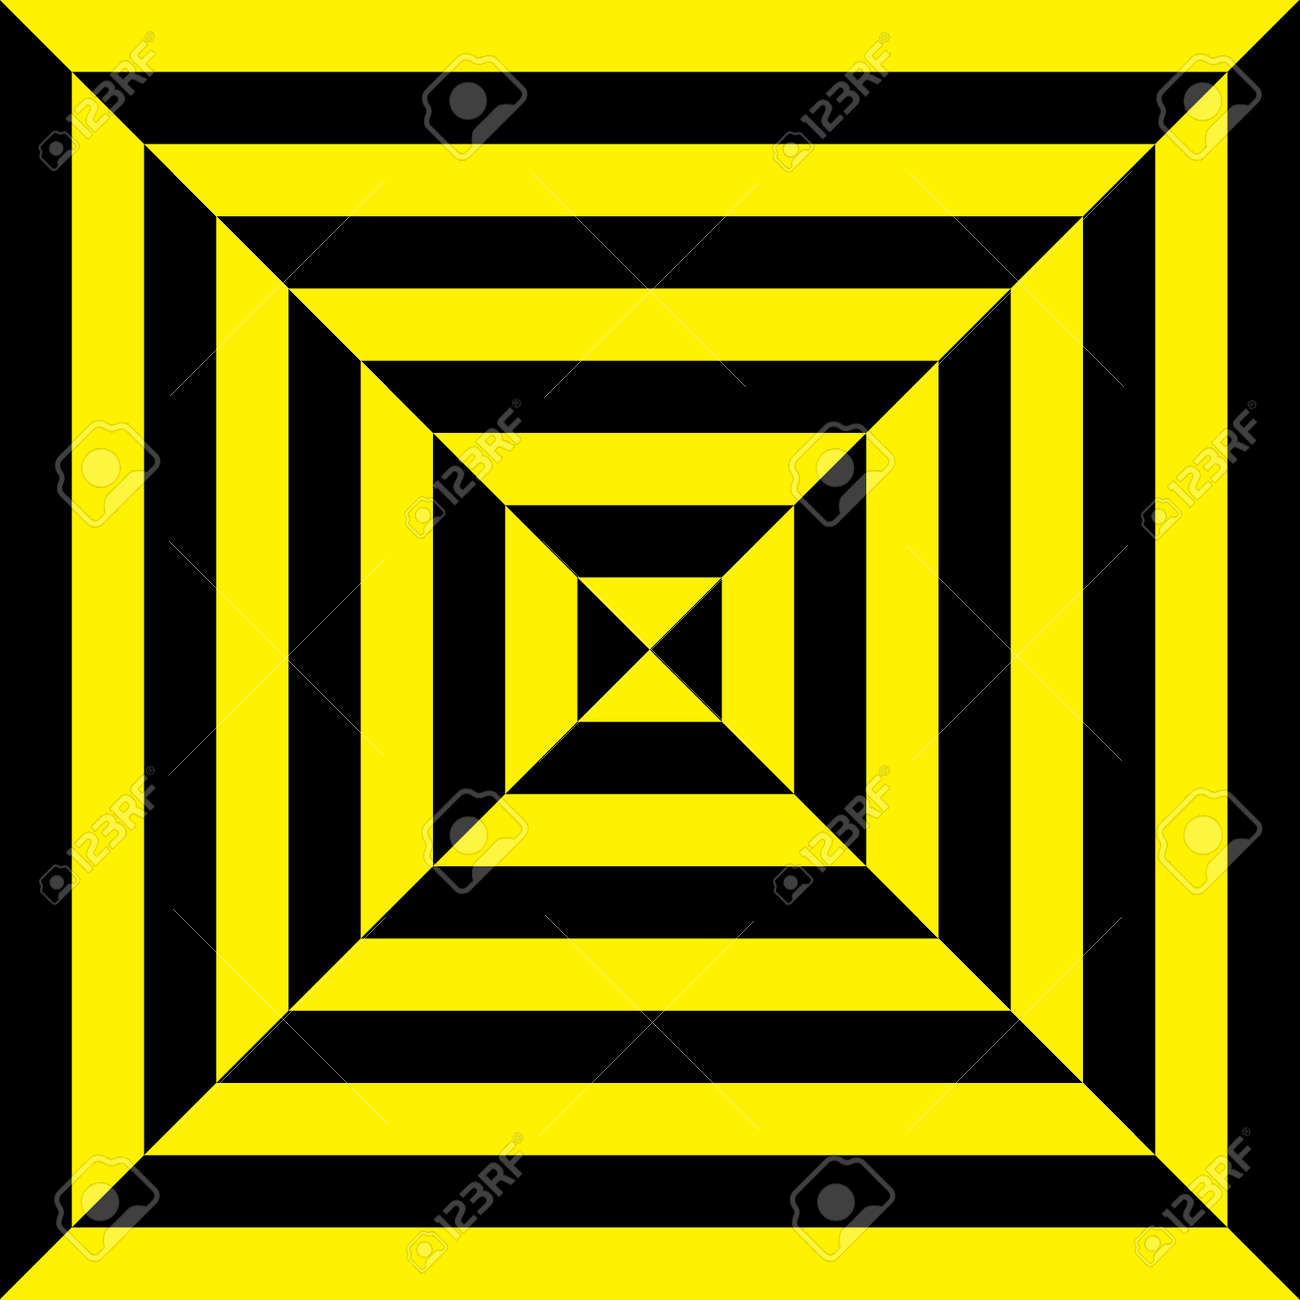 Attention yellow on black and black on yellow tile Stock Vector - 18197601